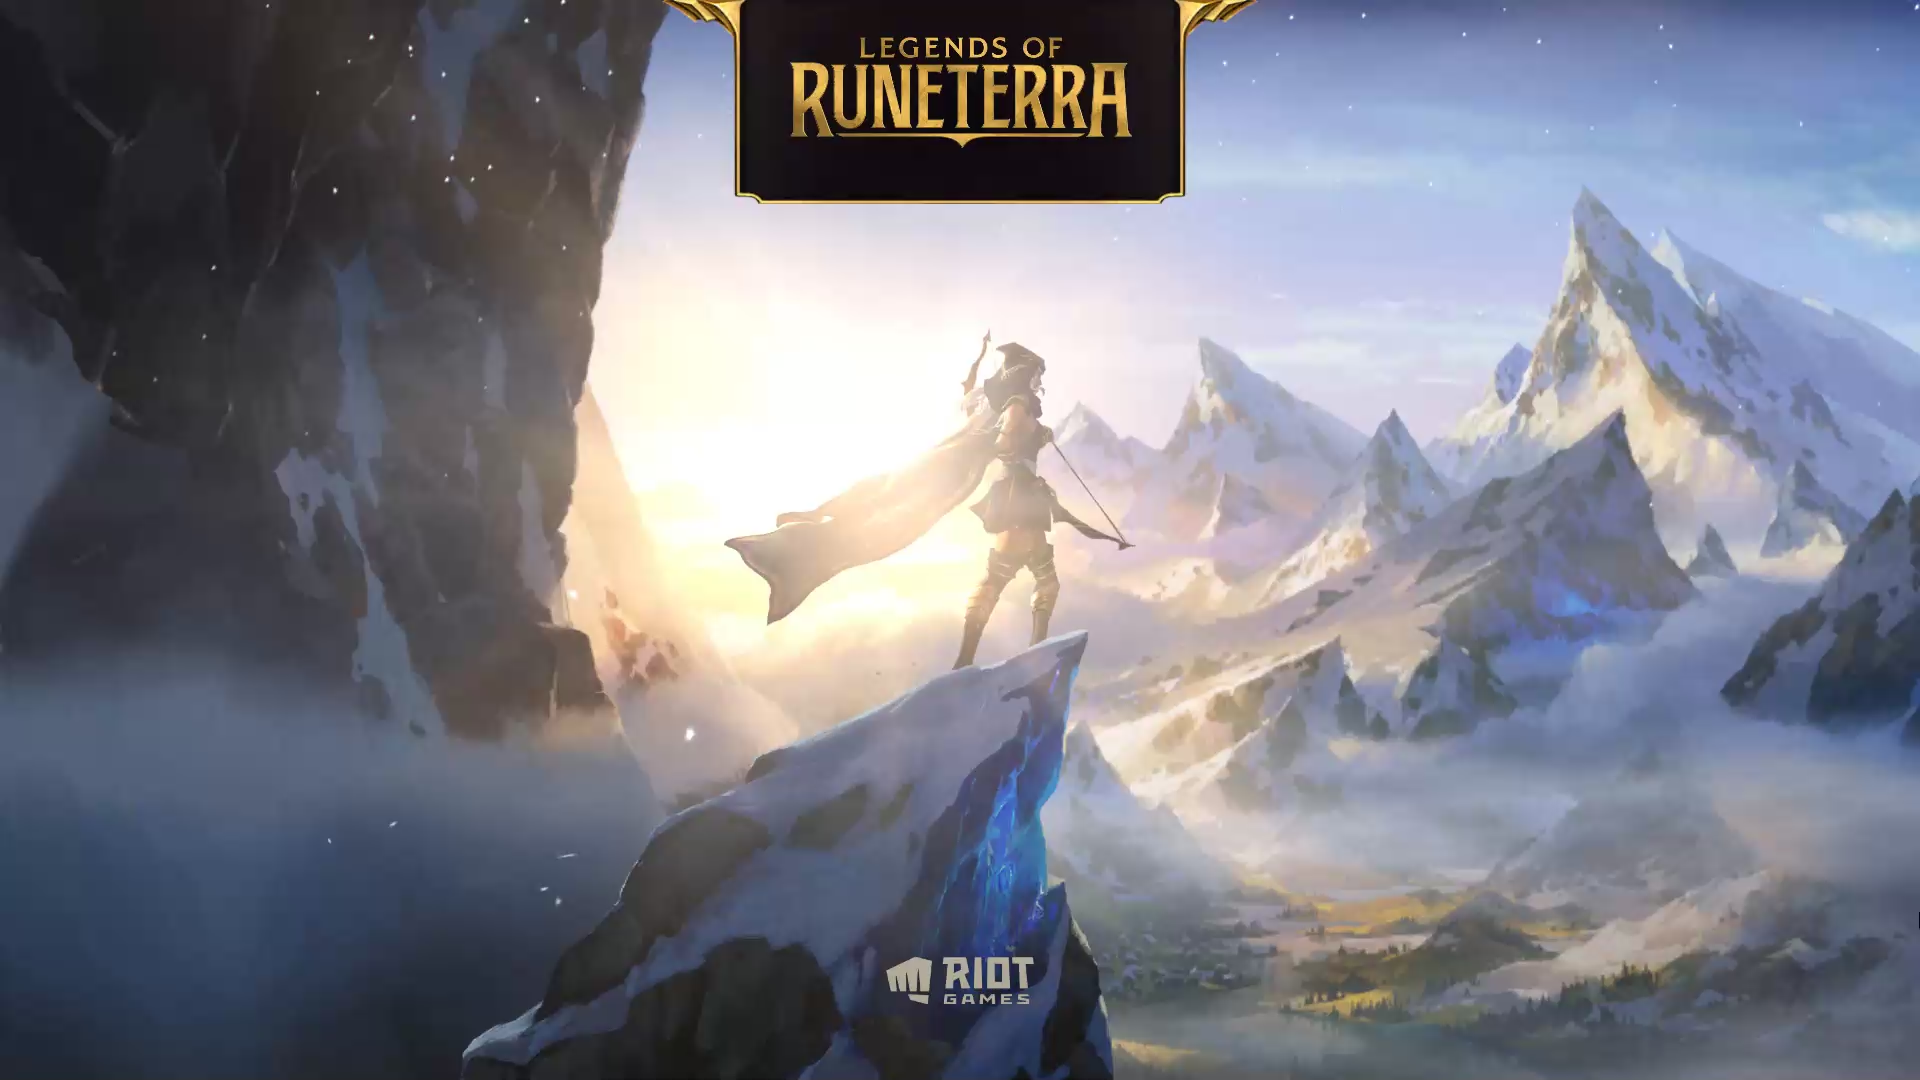 Digital Card Games – Legends of Runeterra